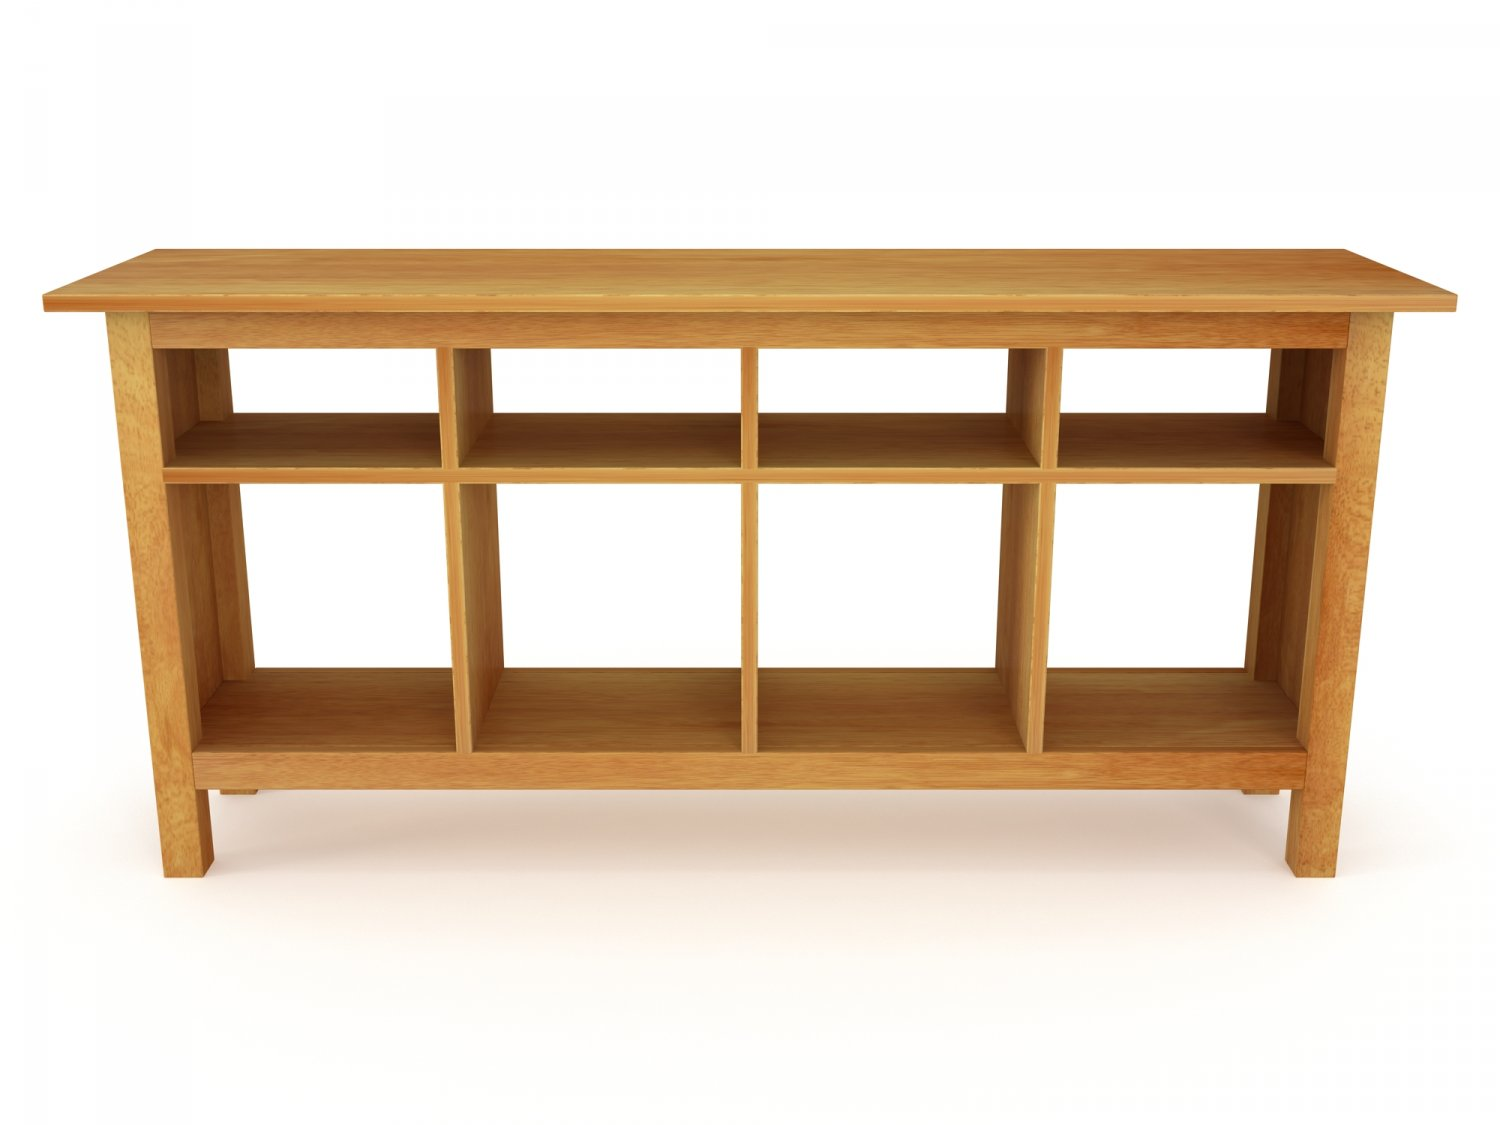 Ikea Hemnes Console Table In The Three Colors Remove Bookmark This Item